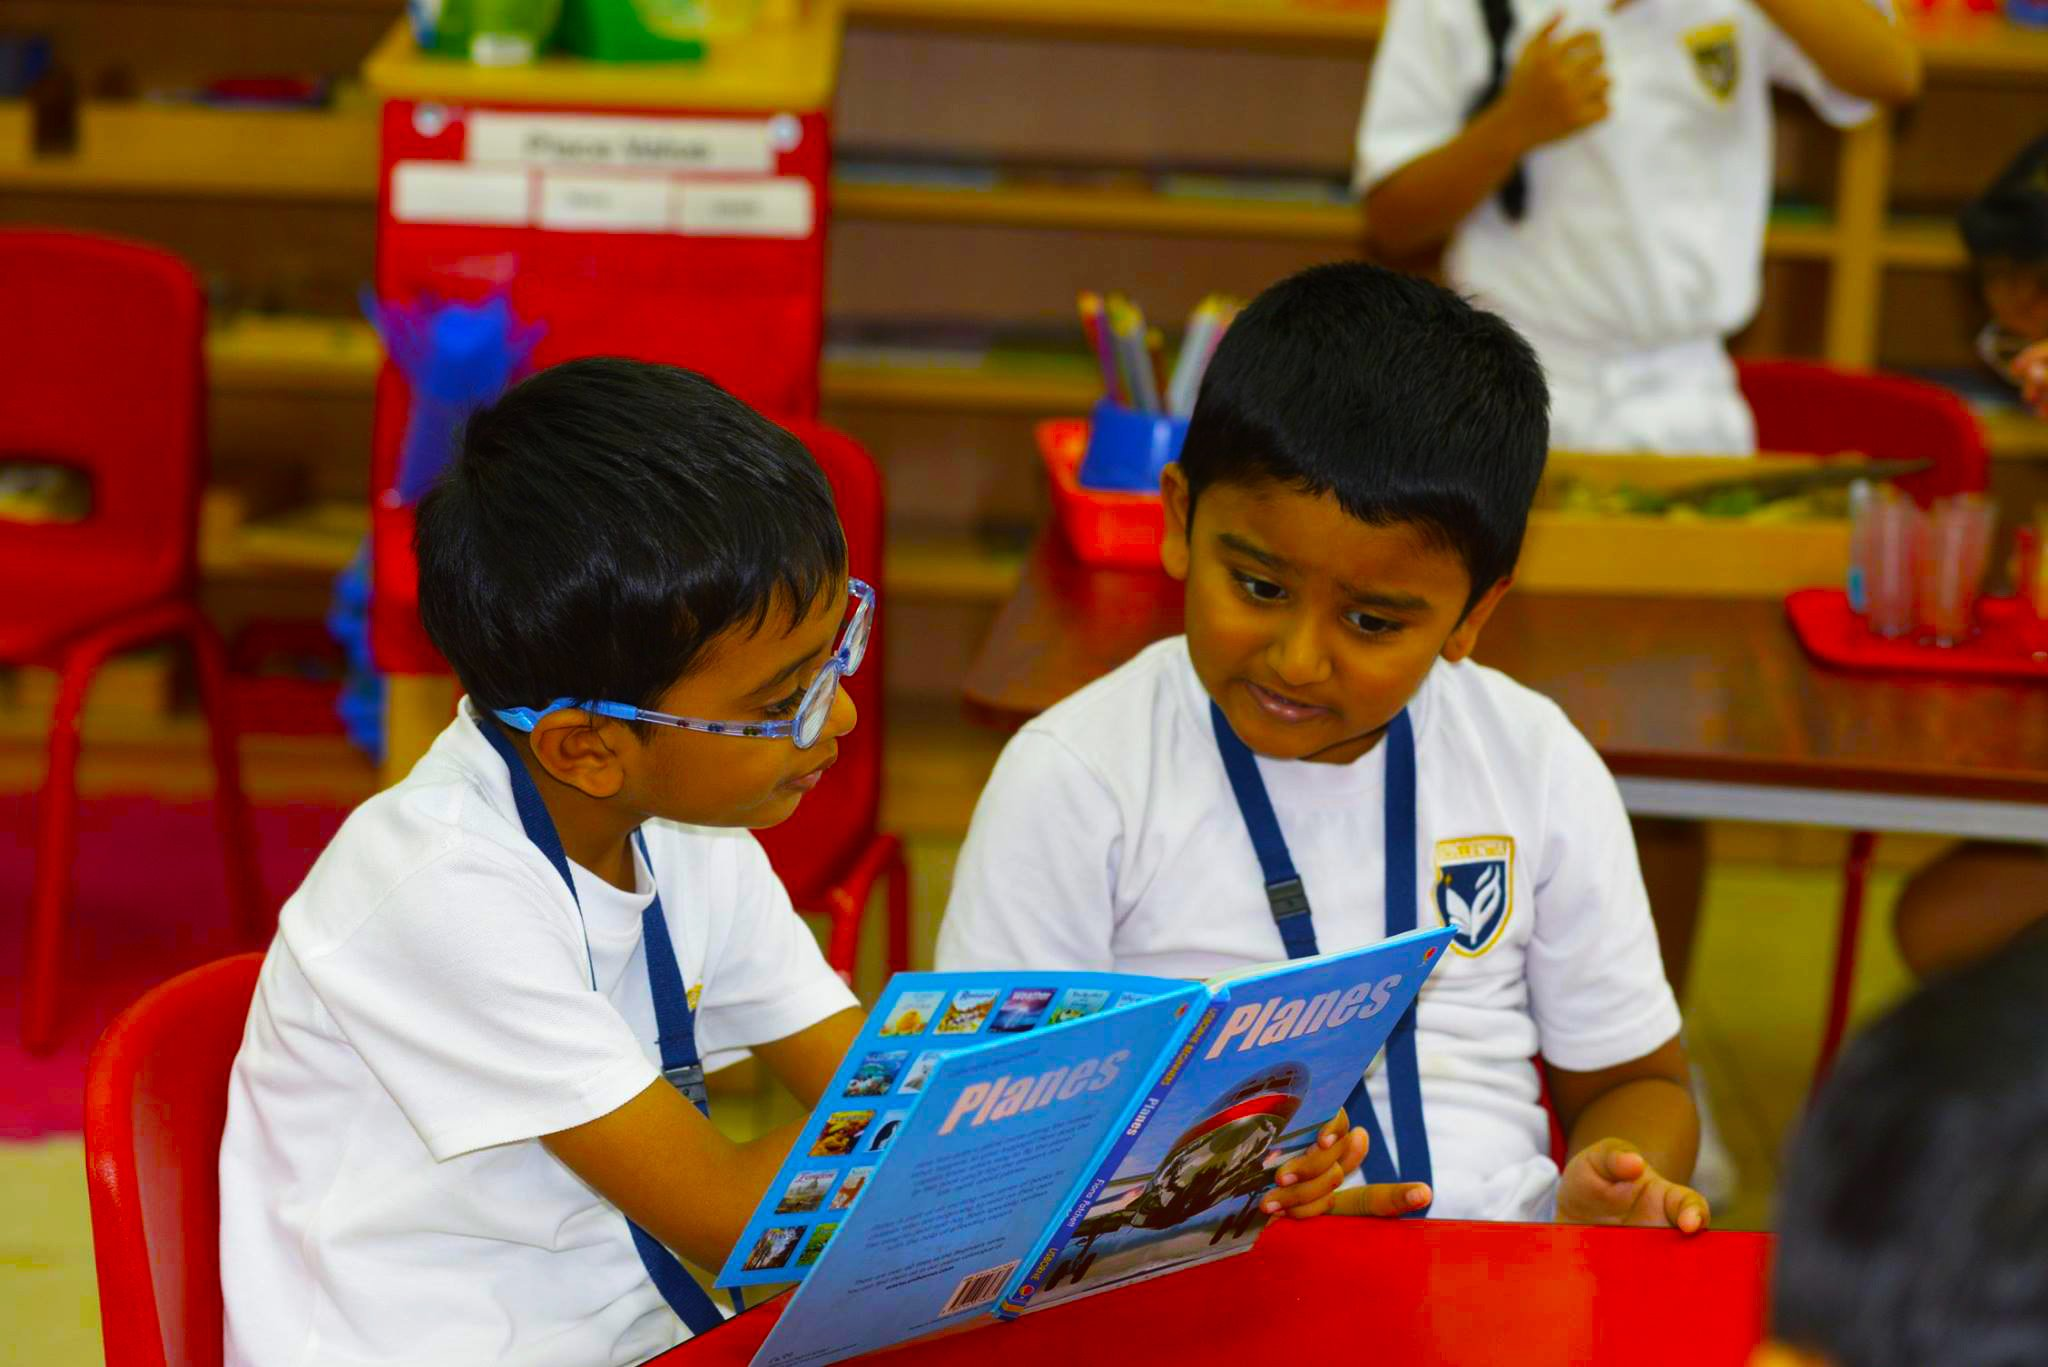 Younger children learning at GEMS Modern School in Dubai